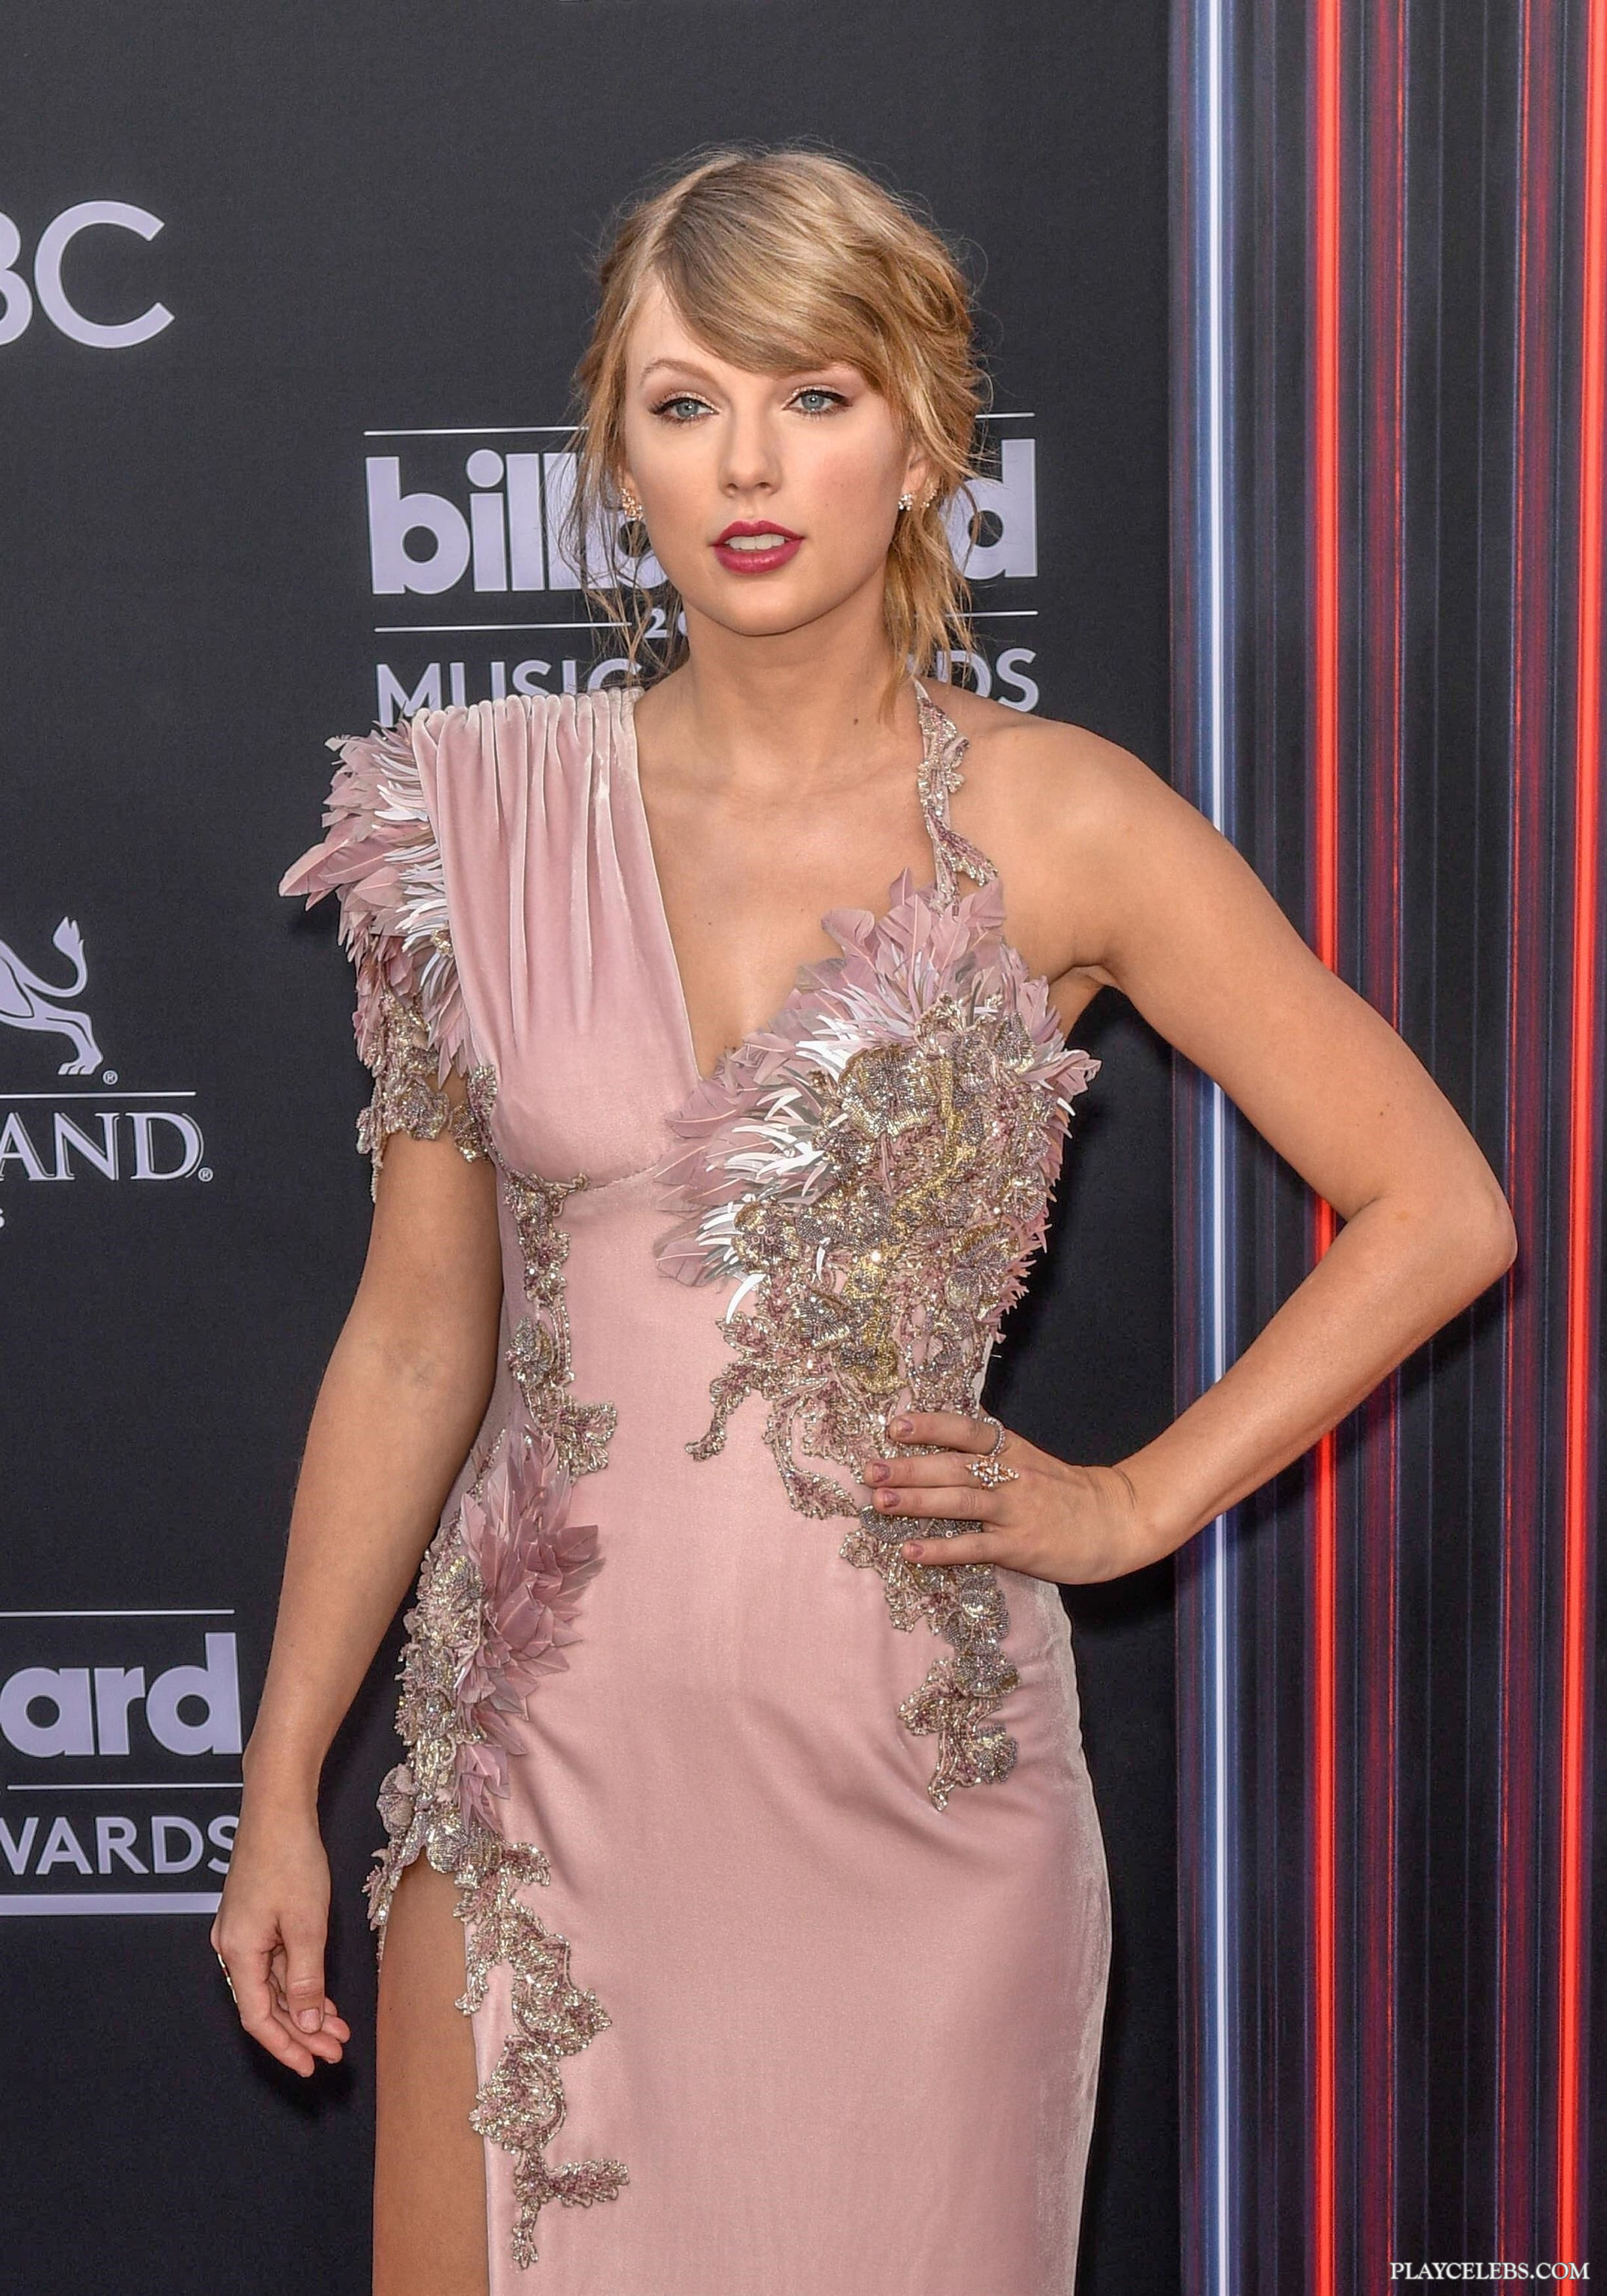 Taylor Swift Not Dating Because of Paparazzi - DETAILS